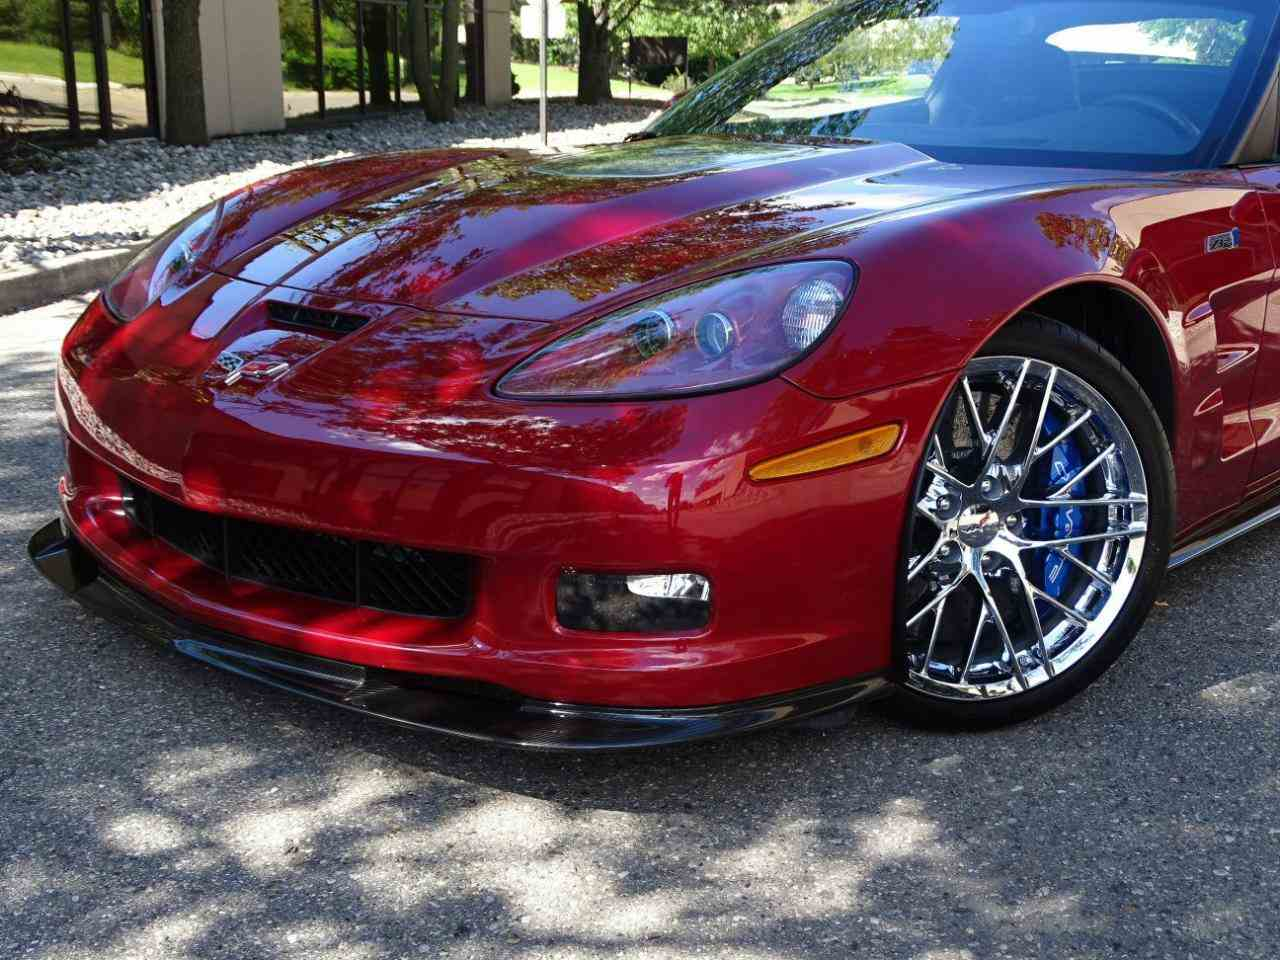 Large Picture of 2010 Chevrolet Corvette - $78,000.00 - L8QM